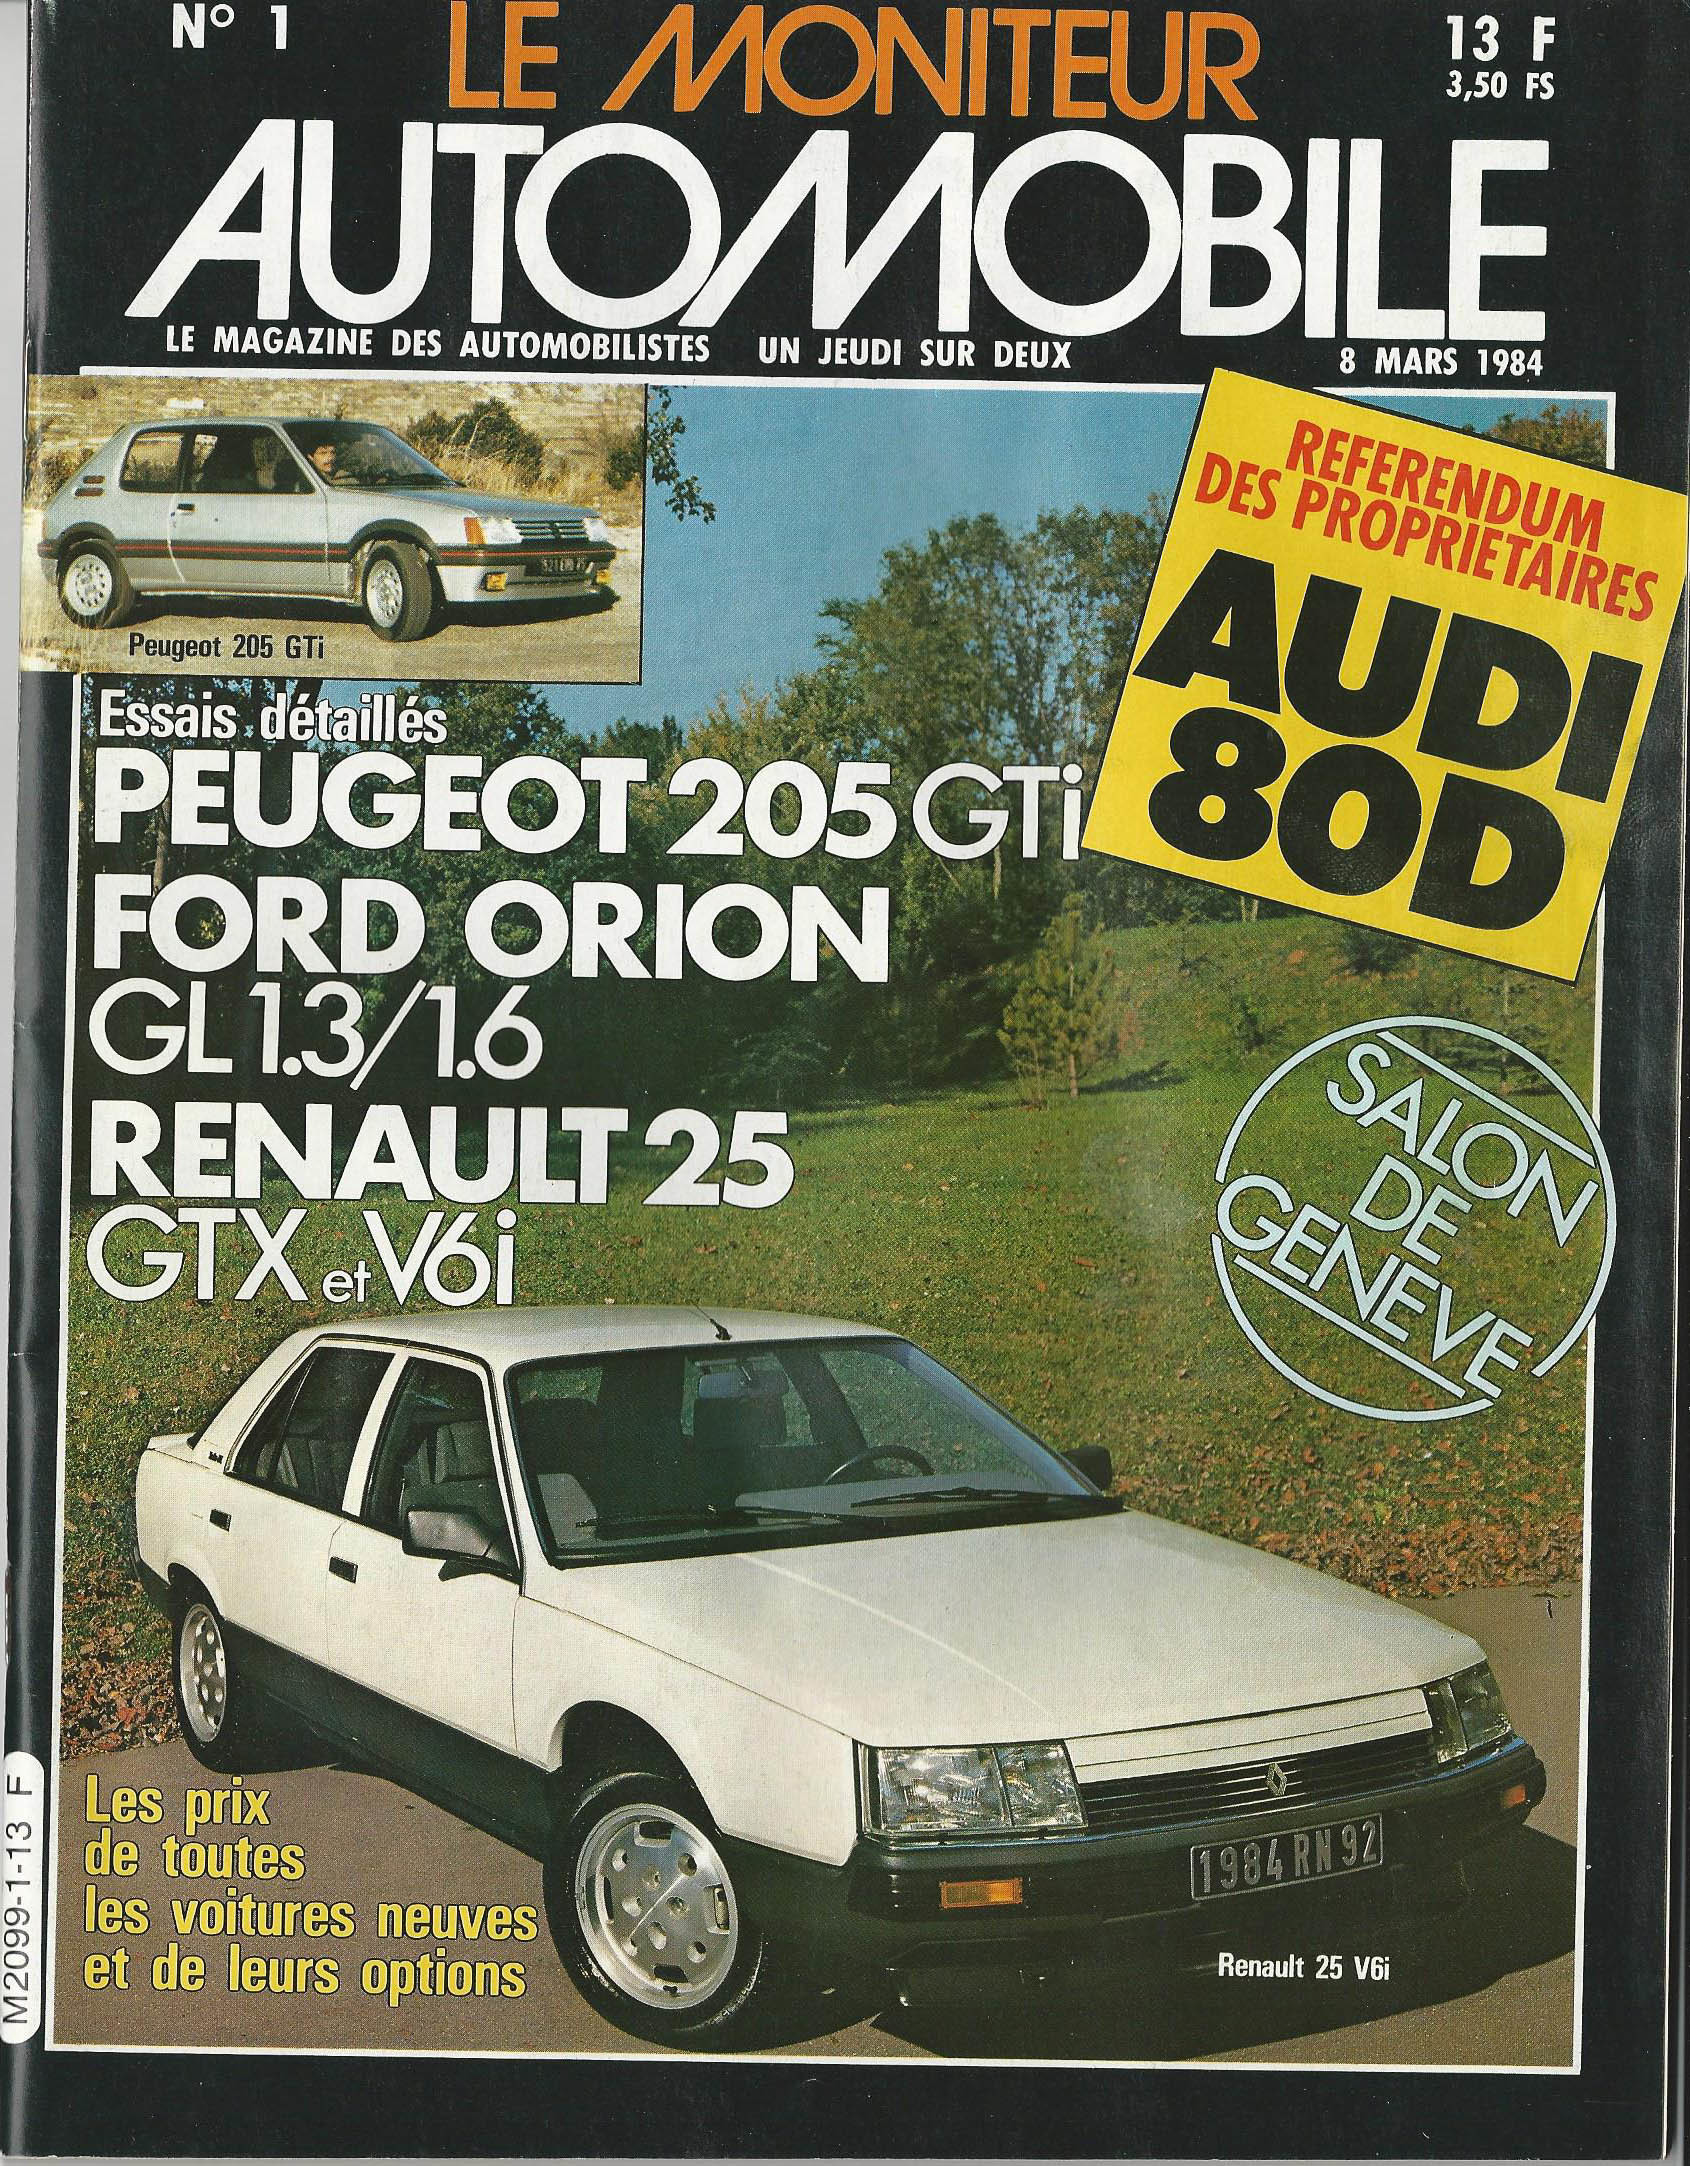 Moniteur Automobile 01 - 08 Mars 1984 (1)